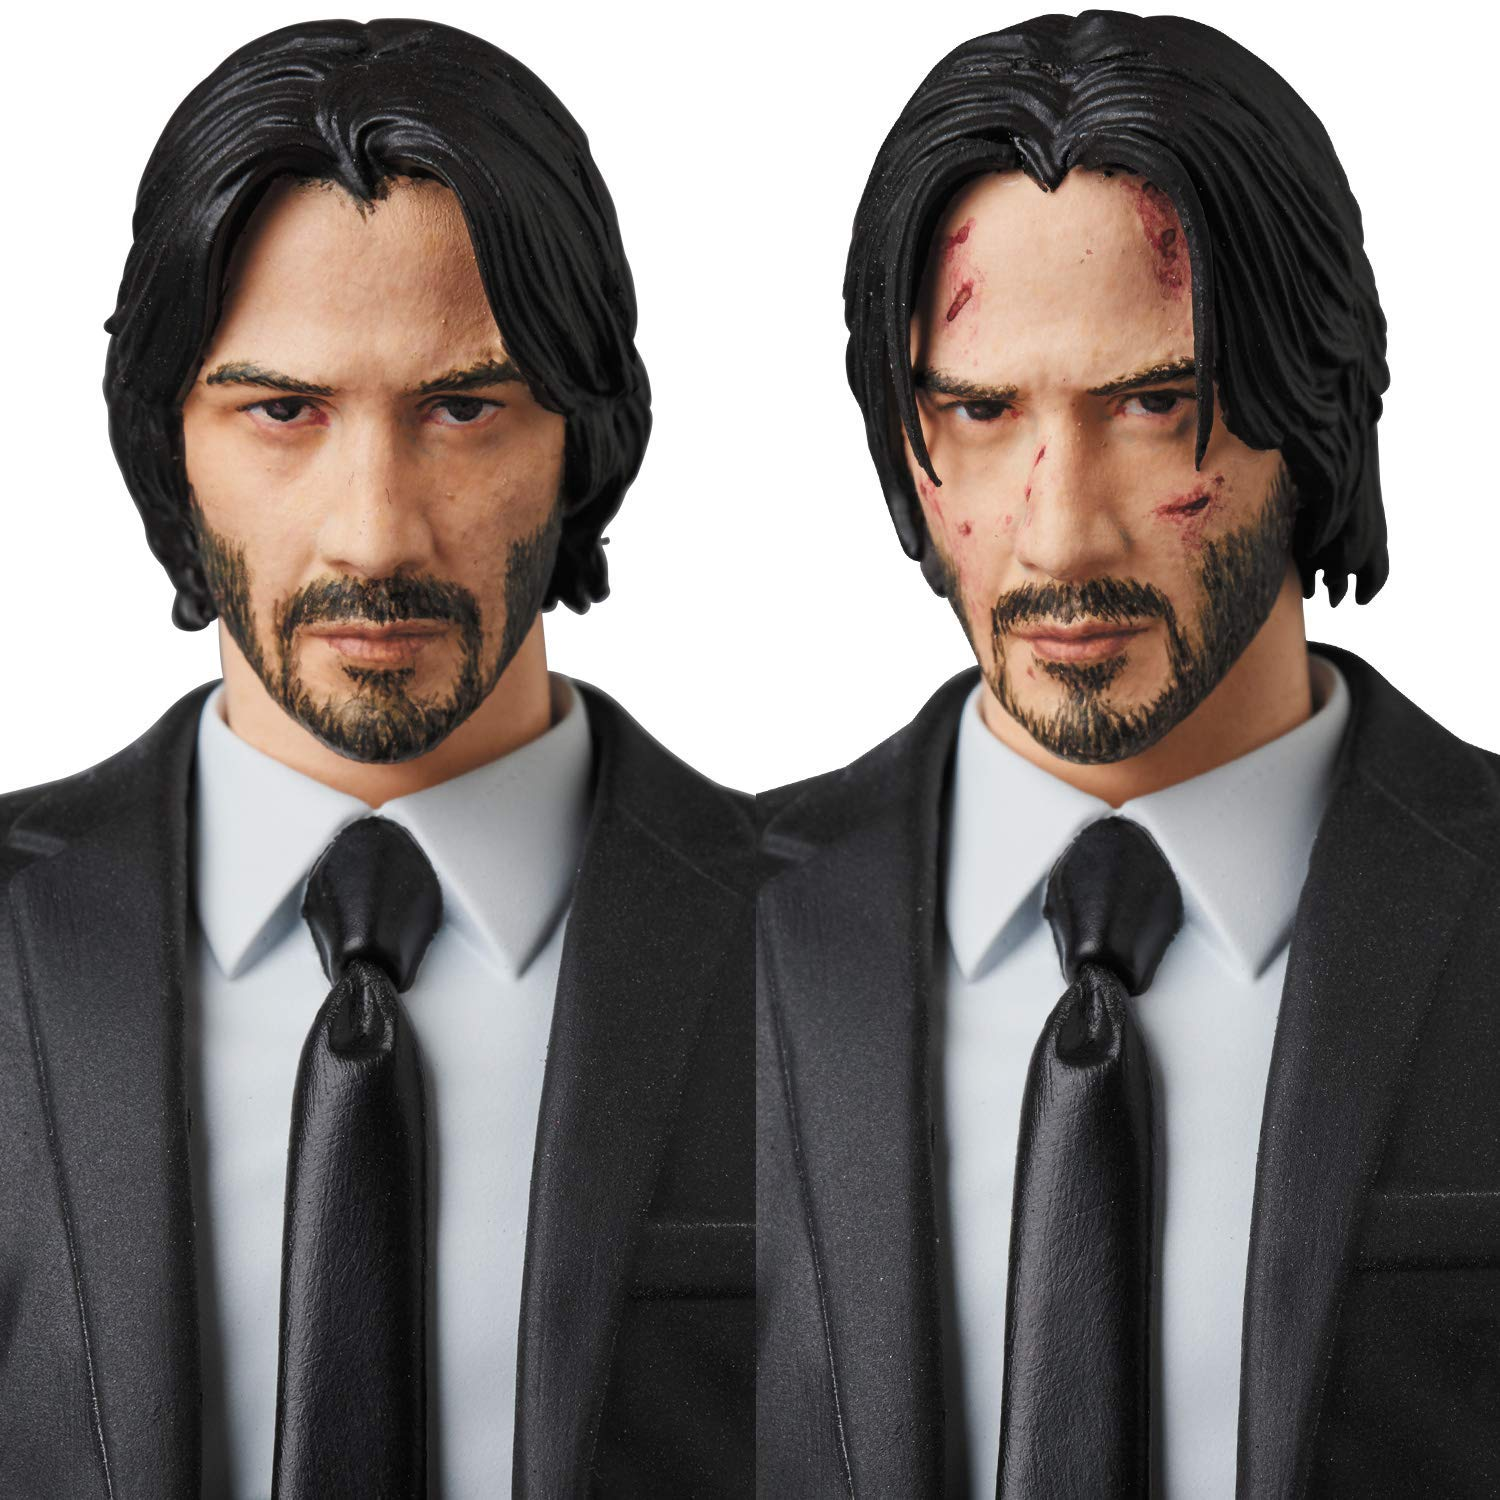 Medicom: MAFEX John Wick Chapter 2 and Alien Promotional Images and